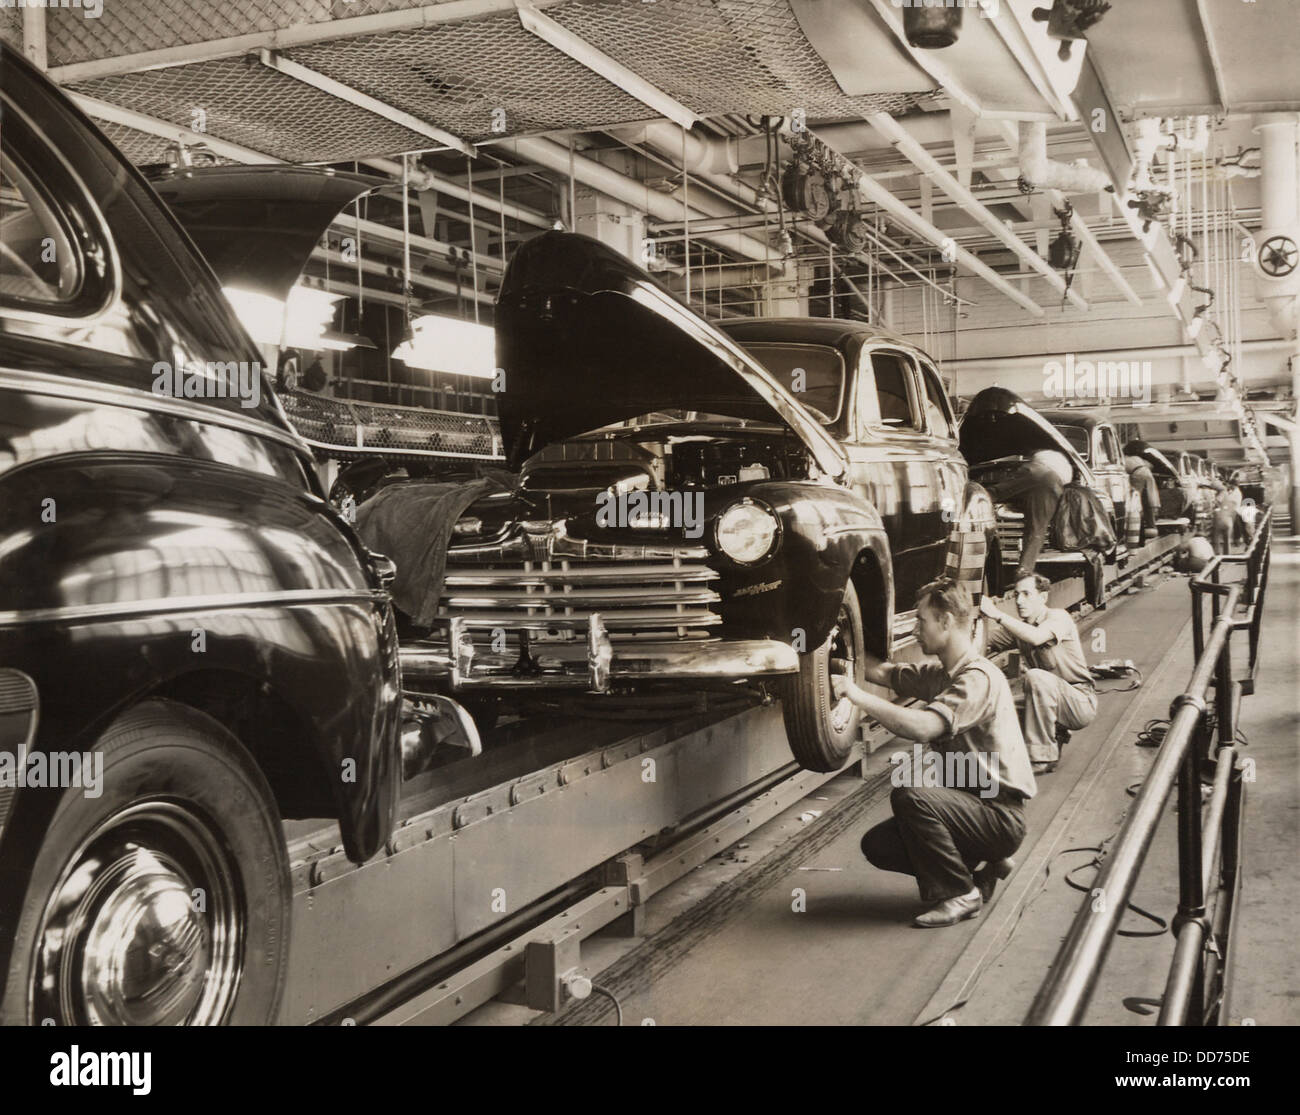 Ford Motor Company assembly line in the 1930s. (BSLOC_2013_7_104) - Stock Image